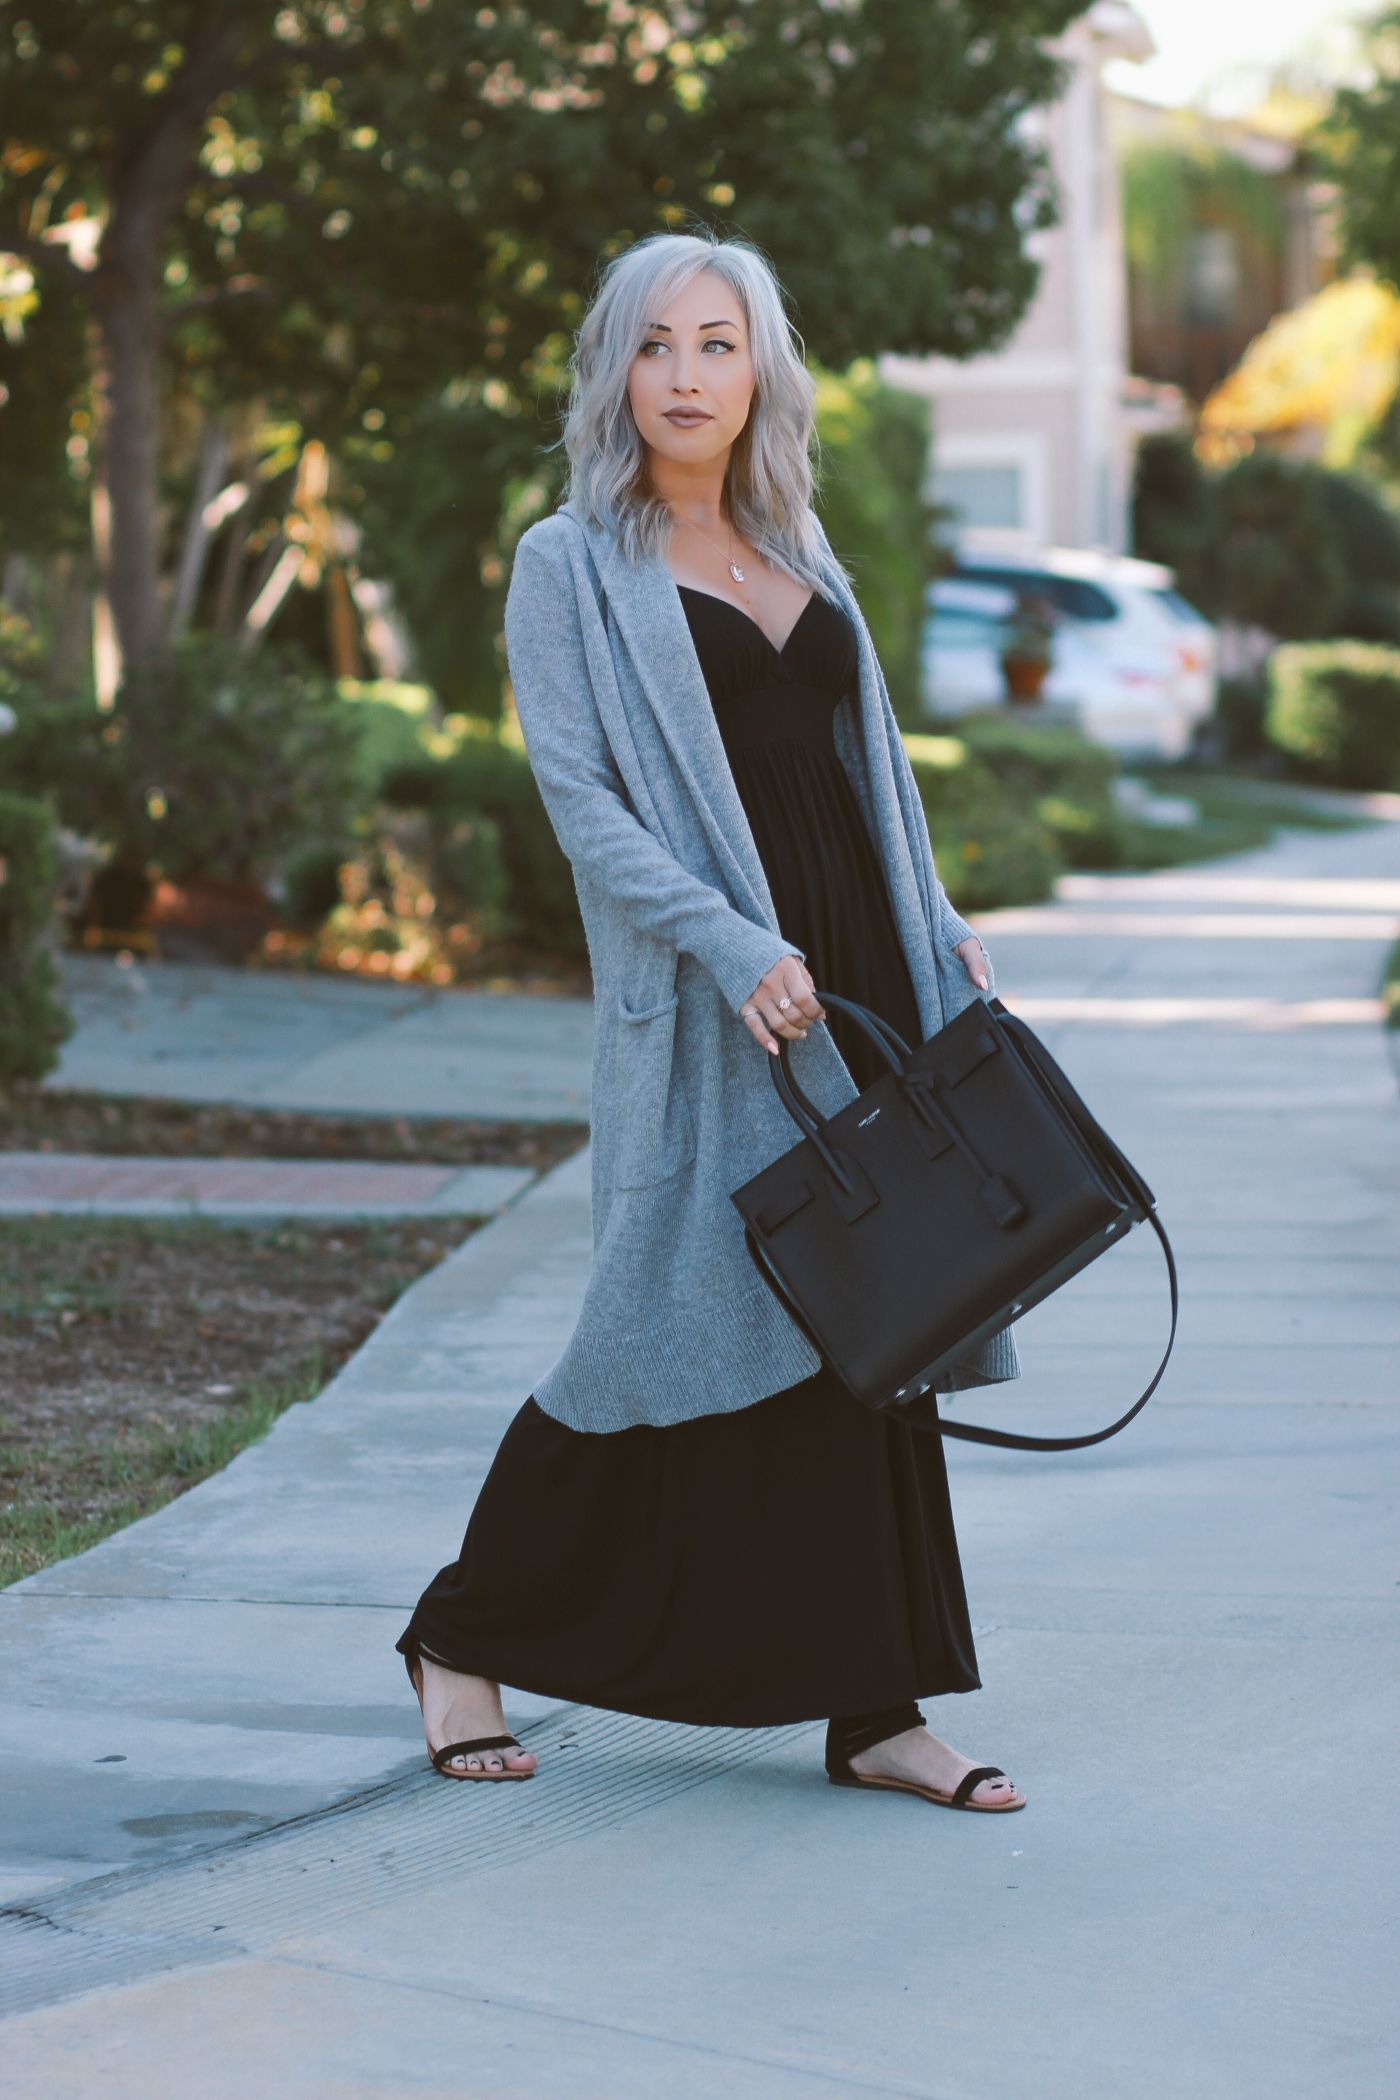 Blondie in the City | Long Comfy Cardigan | Fall Fashion | Black ...